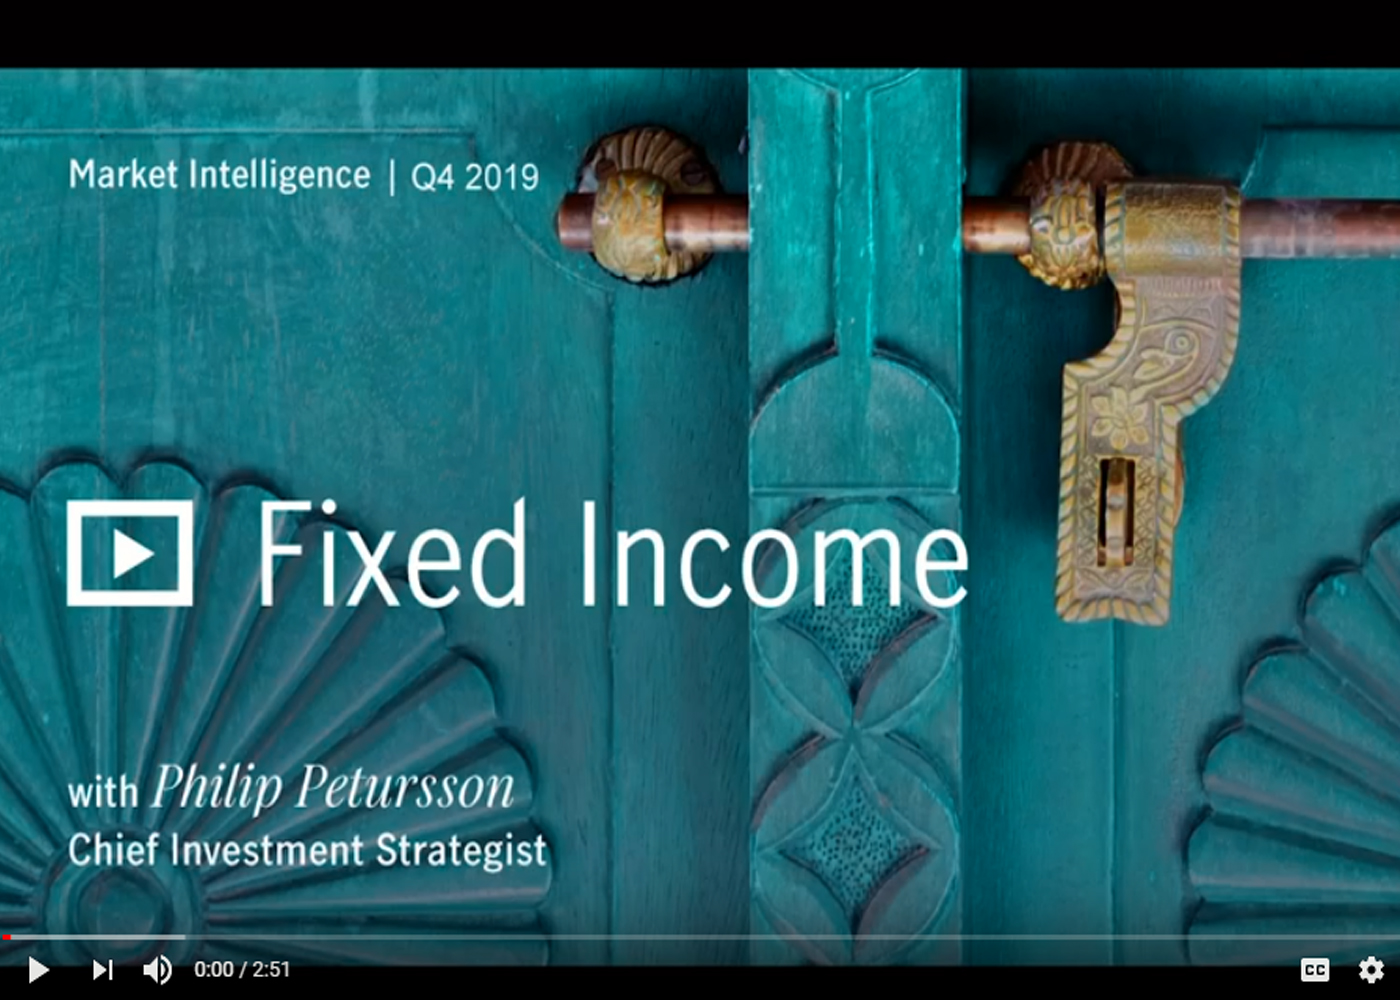 Market Intelligence Q4 2019: Fixed Income with Philip Petursson  Thumbnail